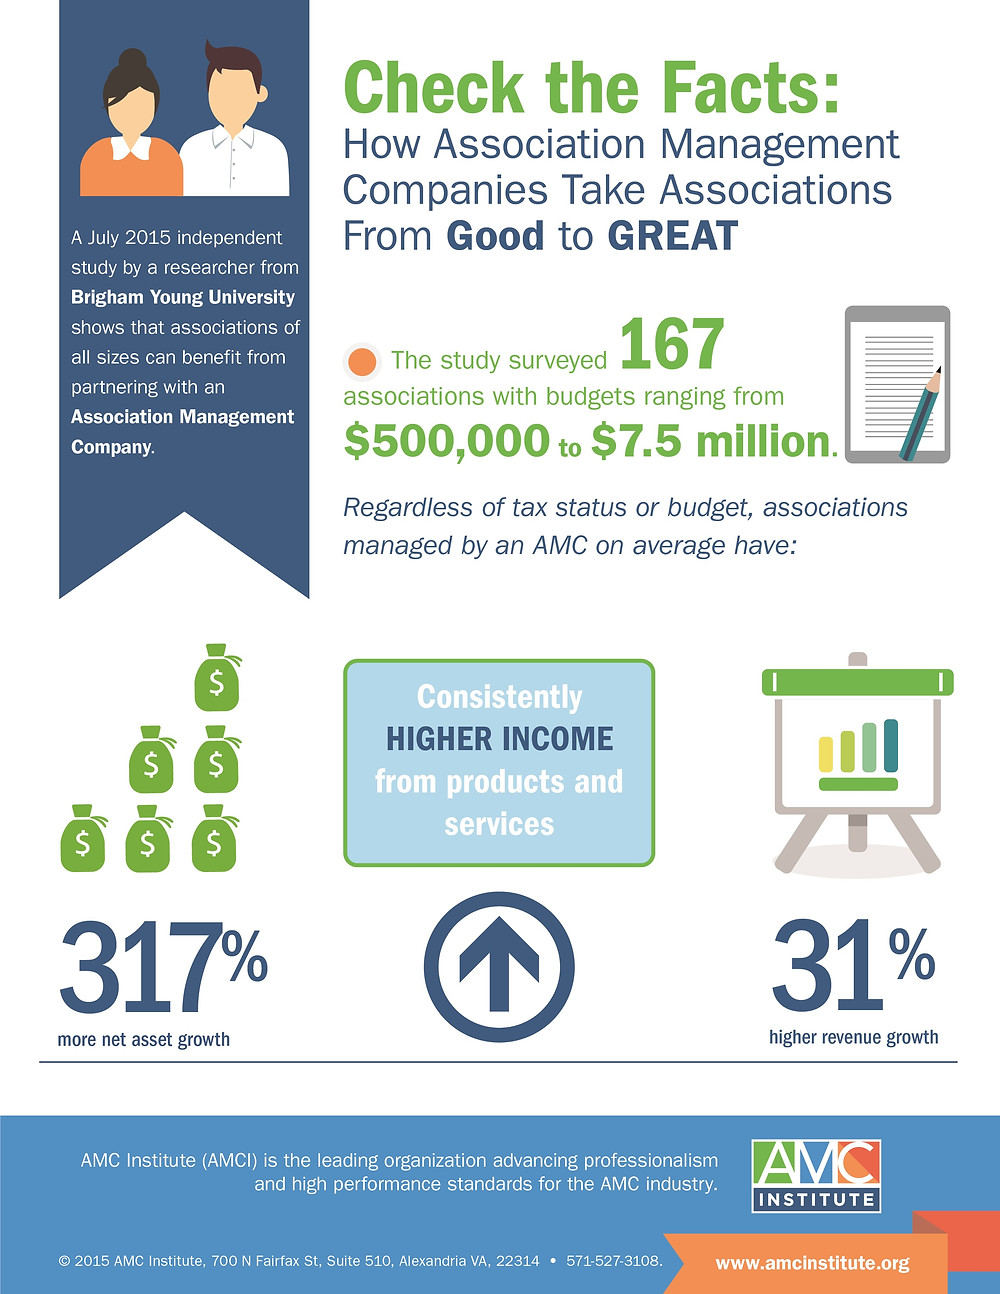 Infographic from AMCI